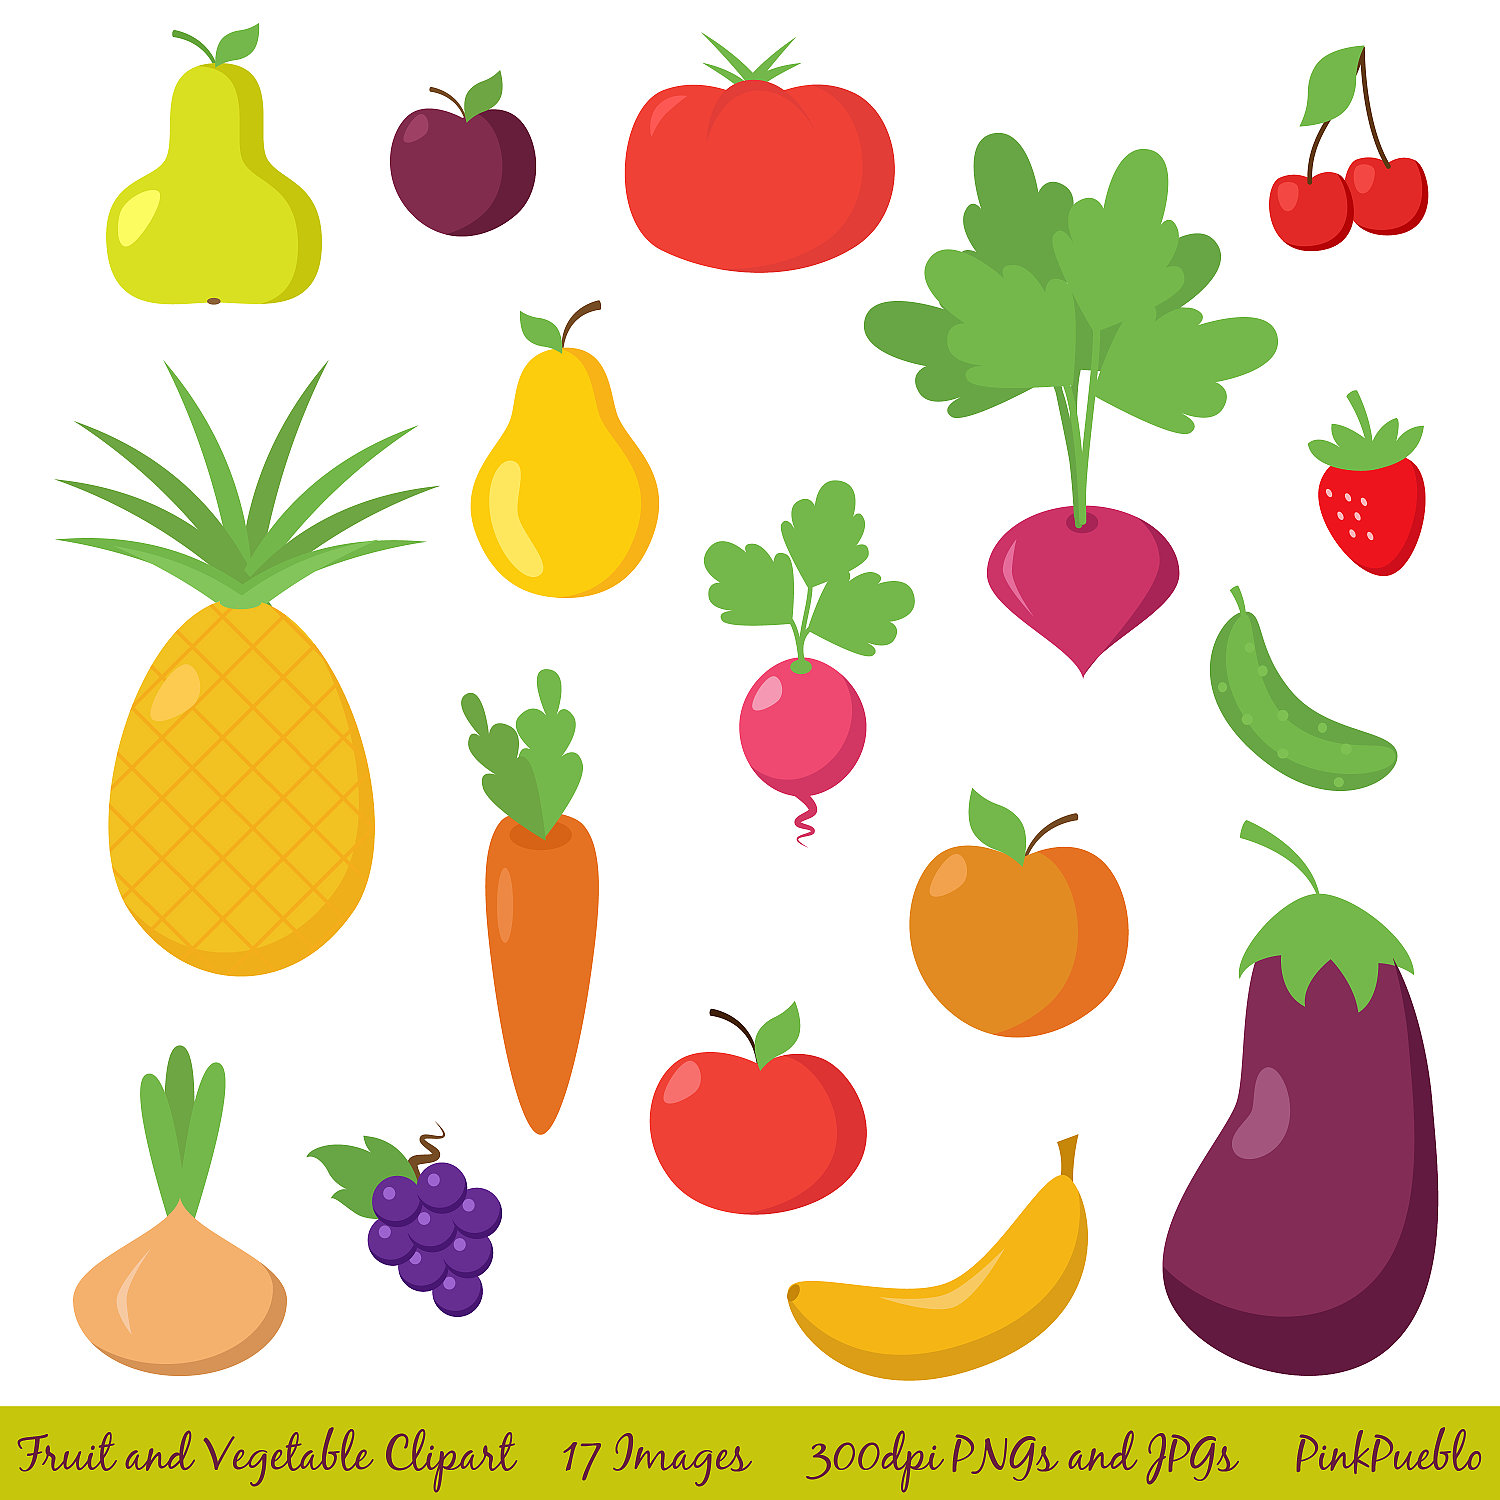 Fruit and Vegetable Clipart Clip Art, Fr-Fruit and Vegetable Clipart Clip Art, Fruit Clipart Clip Art, Vegetable Clipart Clip Art - Commercial and Personal Use-9